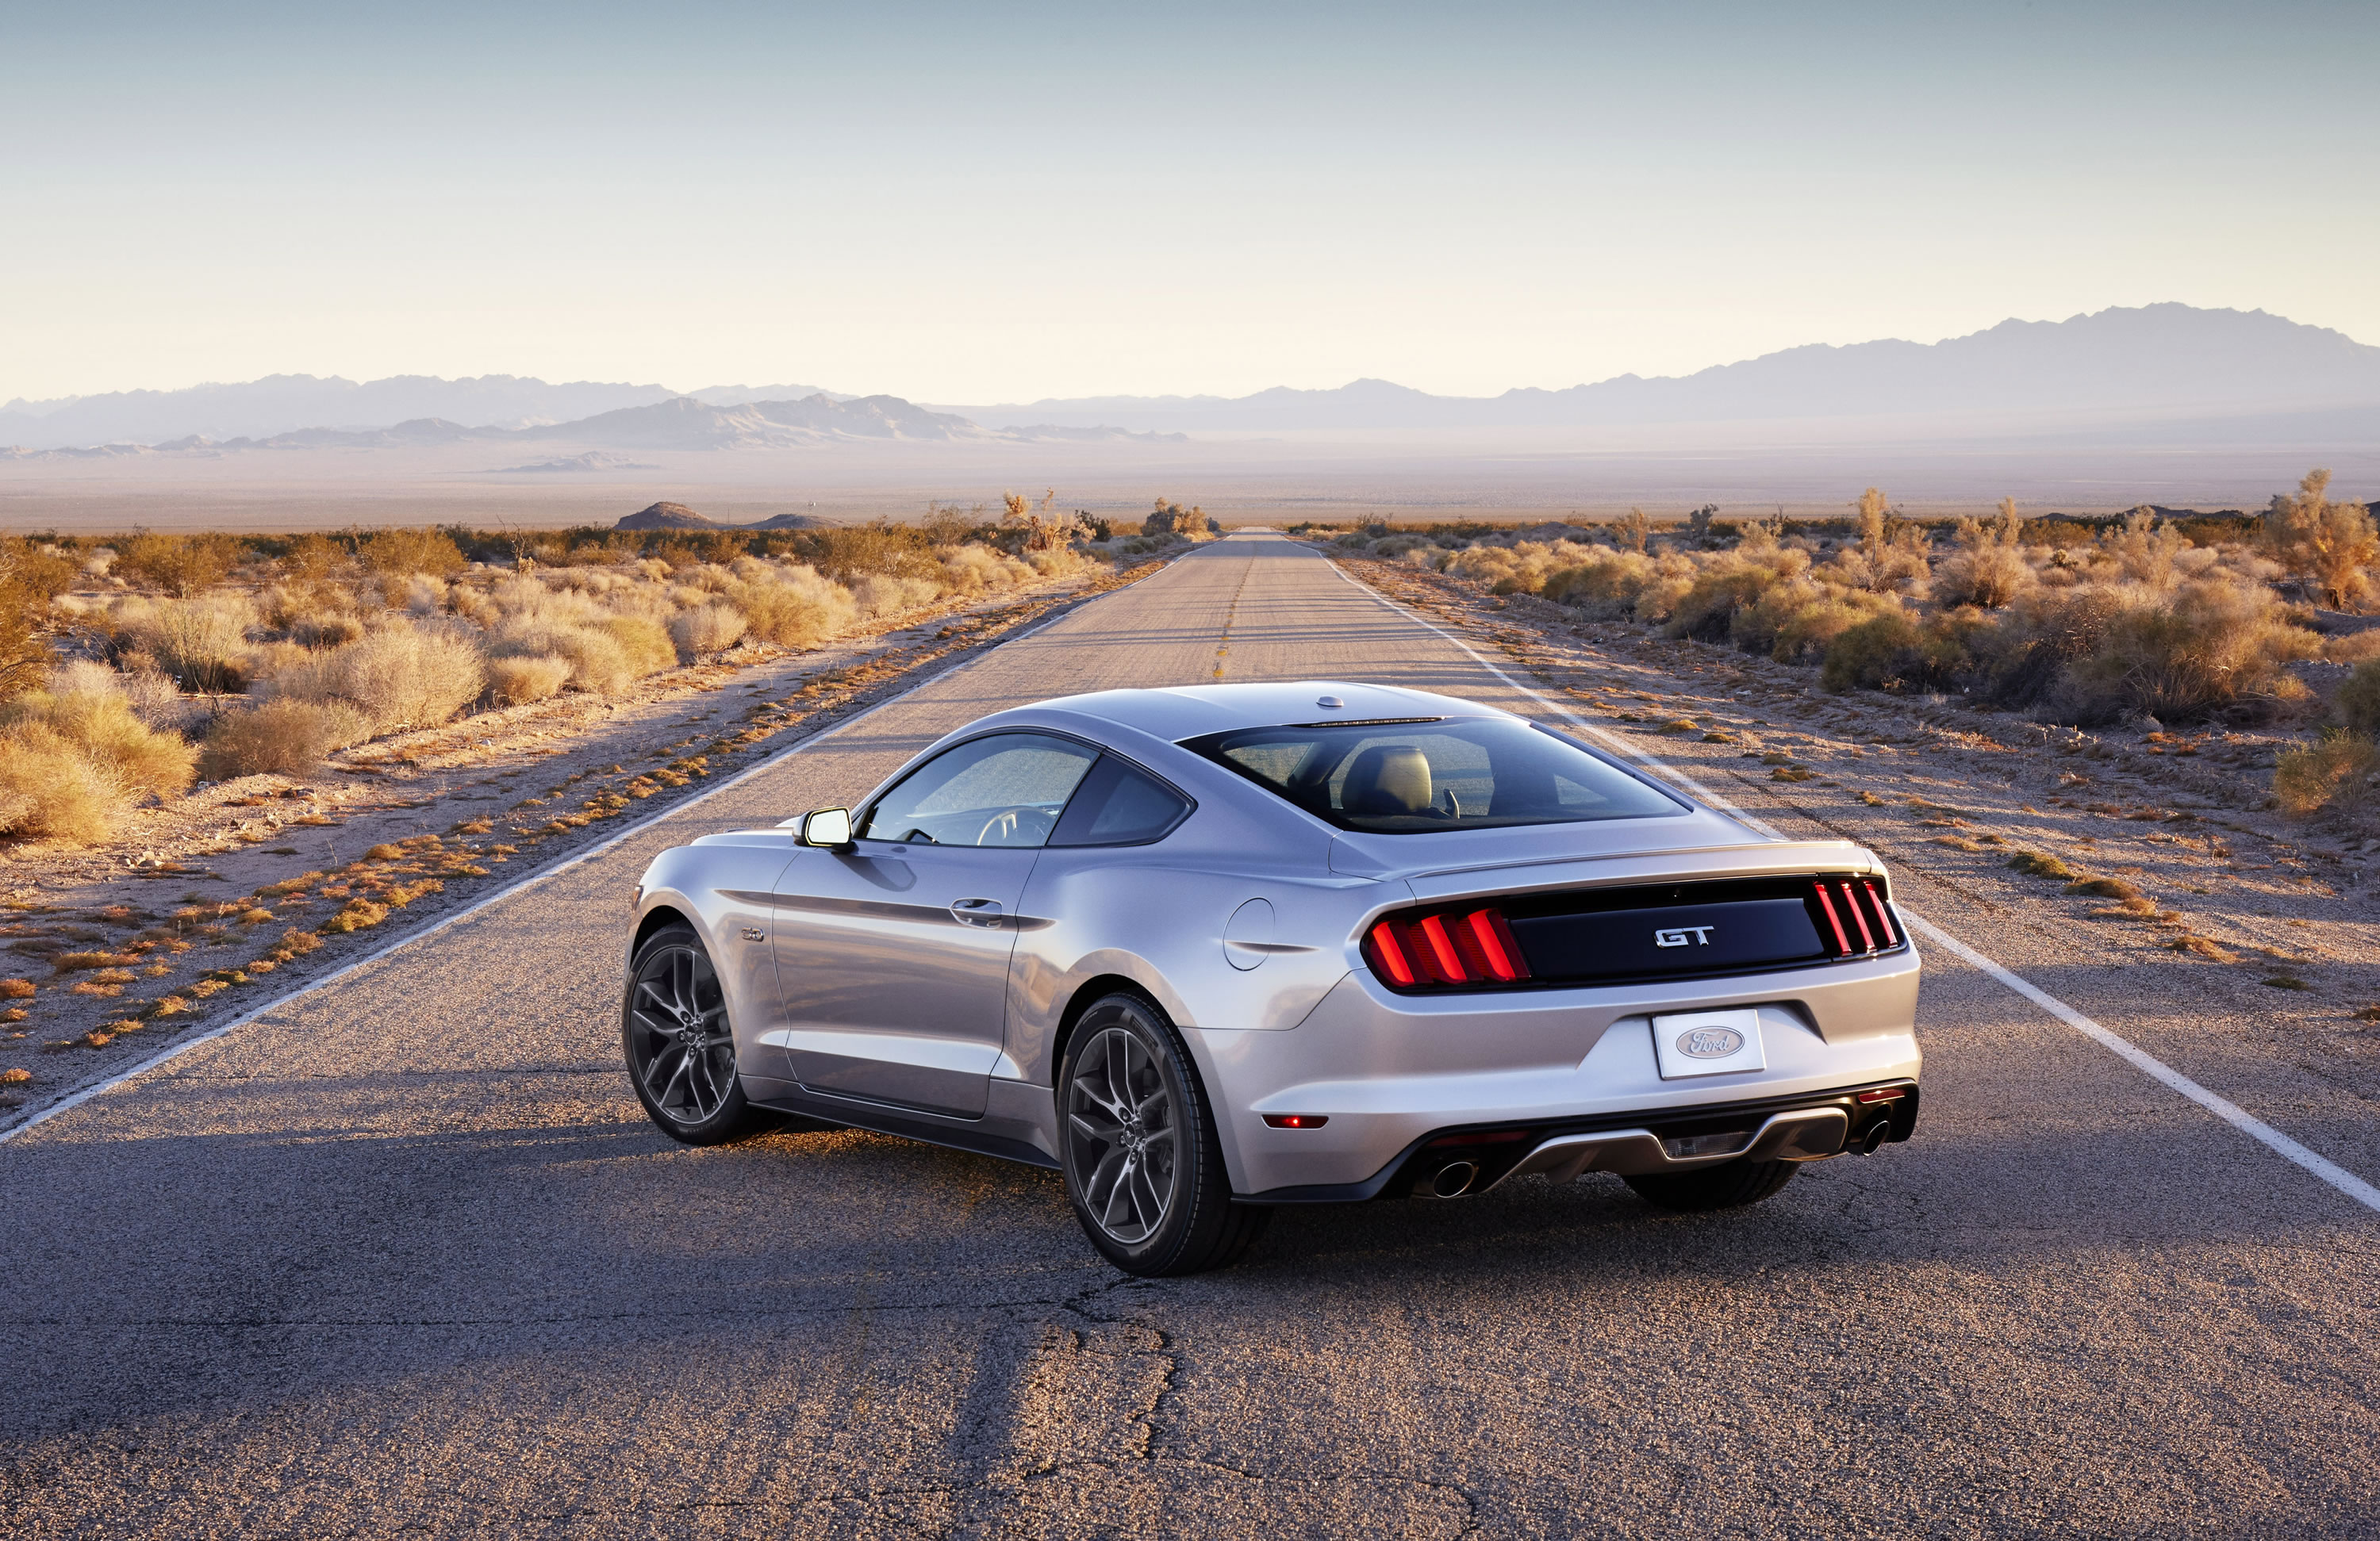 2015 ford mustang gt photos specs and review rs. Black Bedroom Furniture Sets. Home Design Ideas